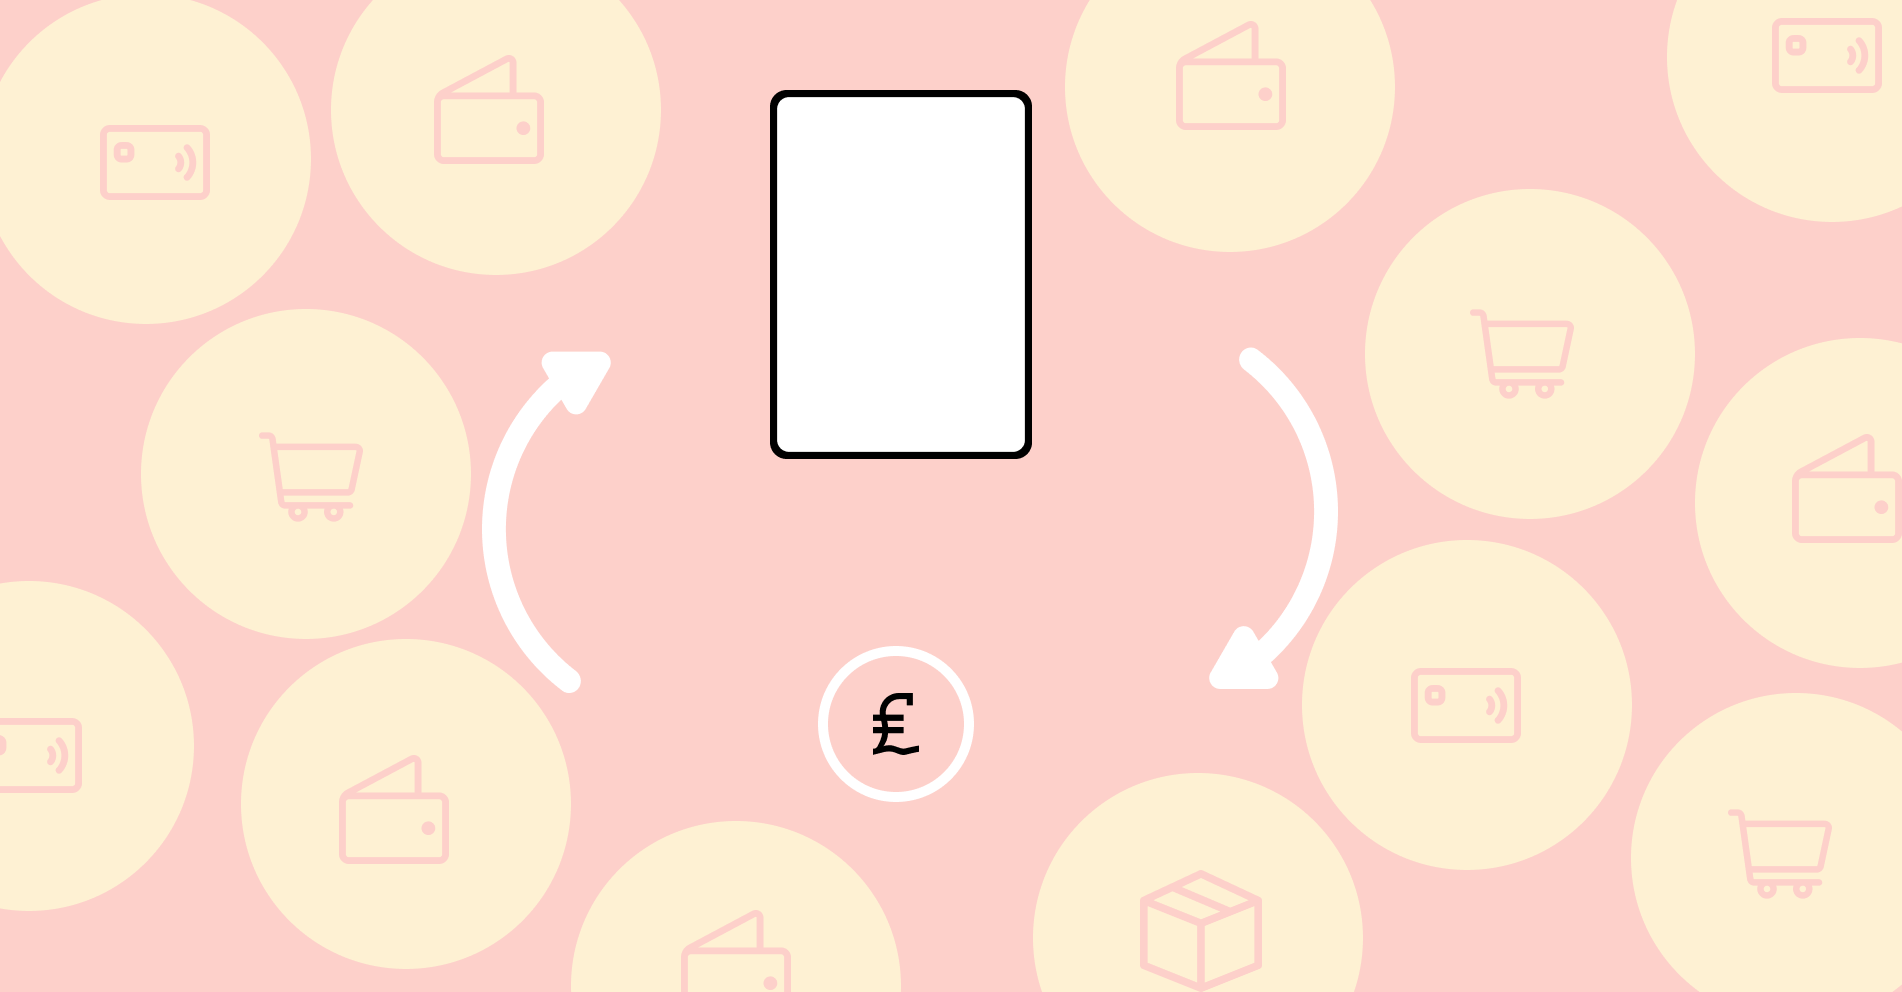 The process of online shopping including browsing, adding to shopping card and payment of cash